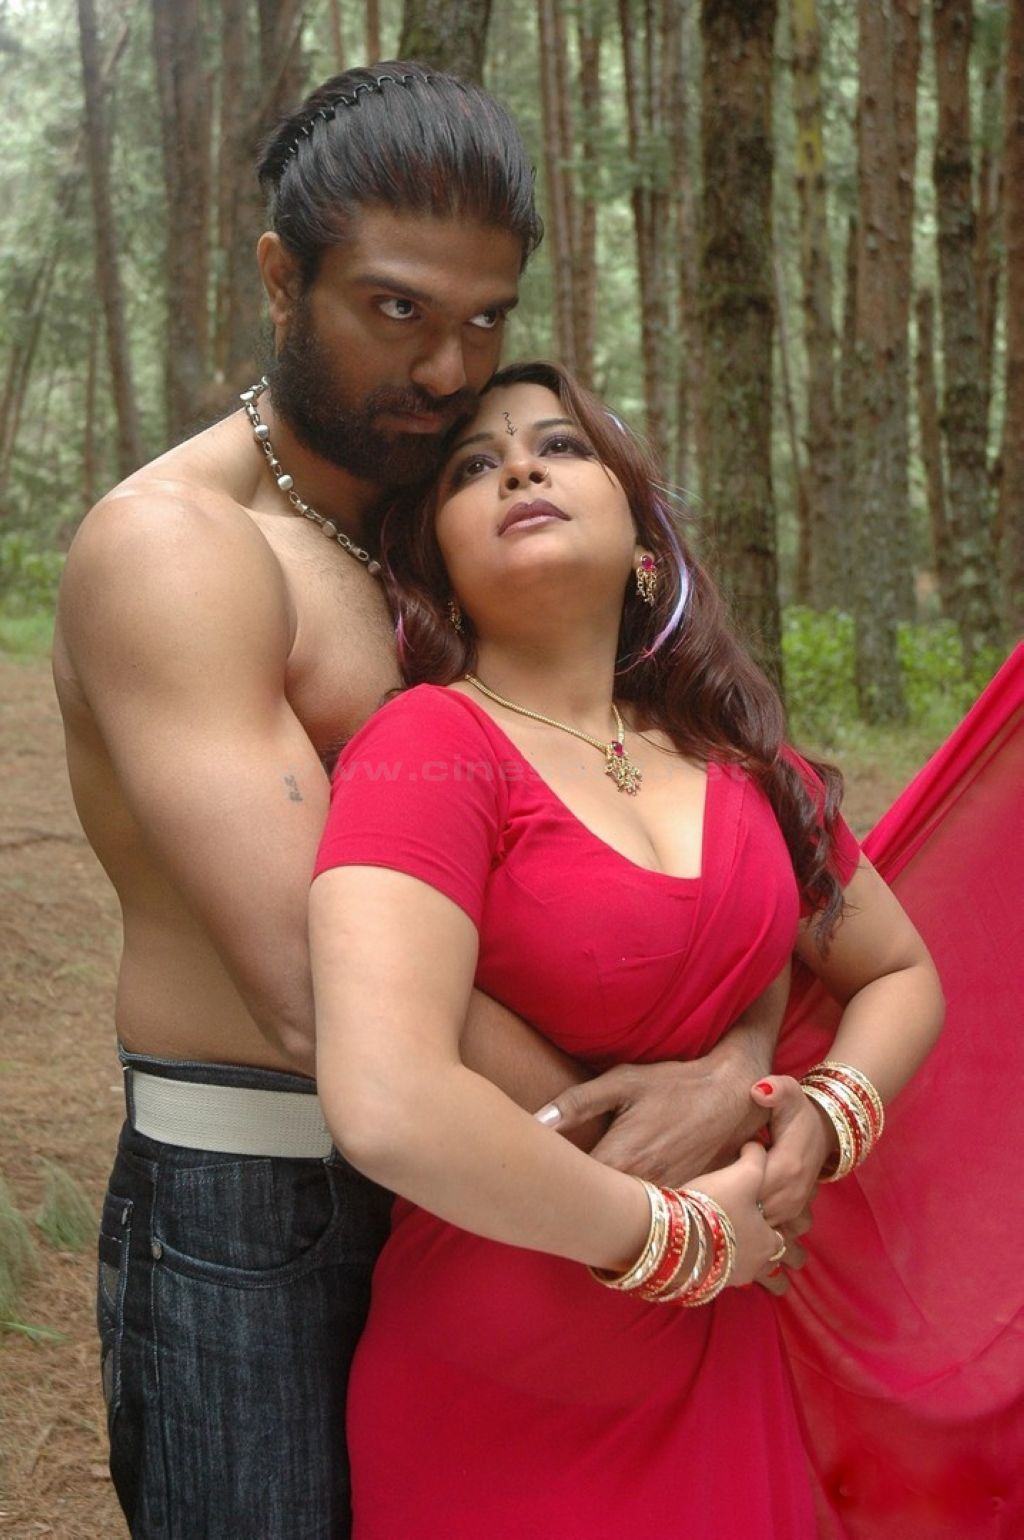 South Indian Sex Bomb Actress Showing Sexy Big Boombs - Hd -7673